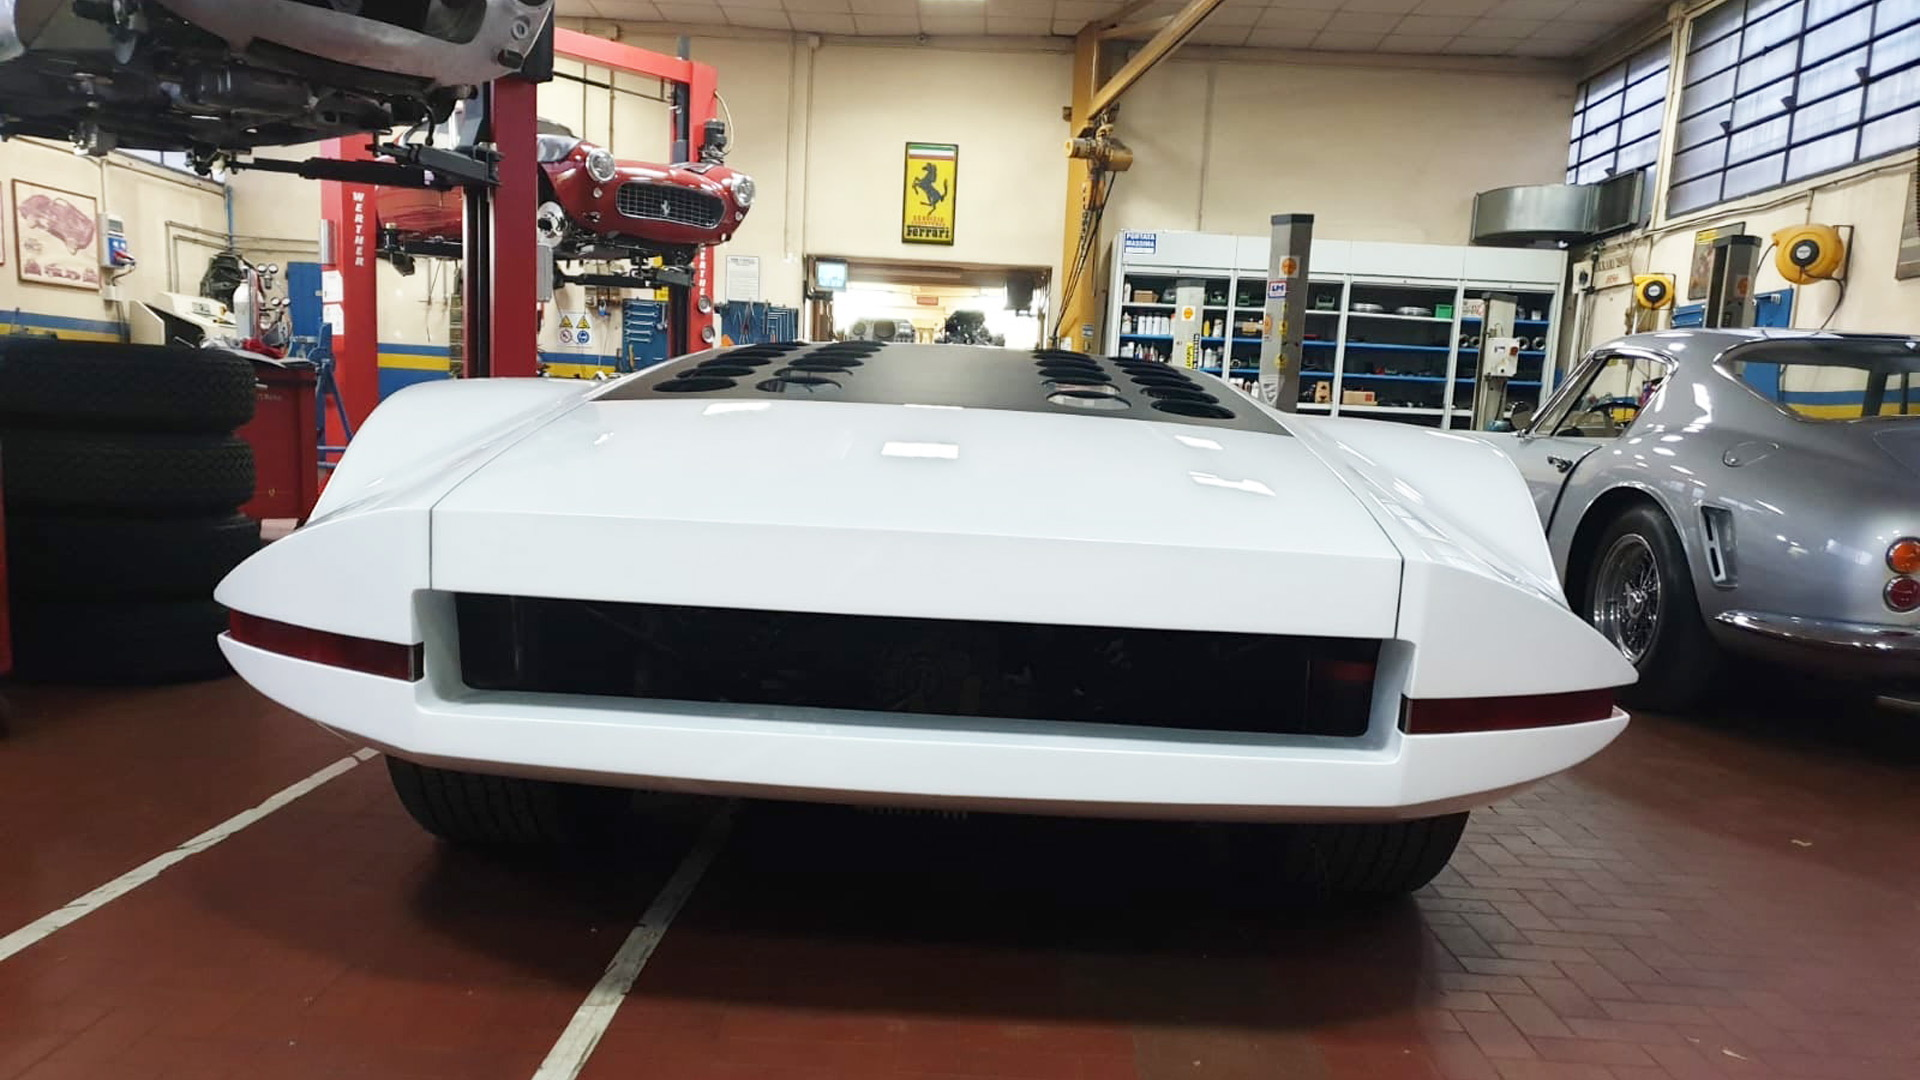 Ferrari 512S Modulo concept after repairs to restore fire damage - Photo credit: James Glickenhaus